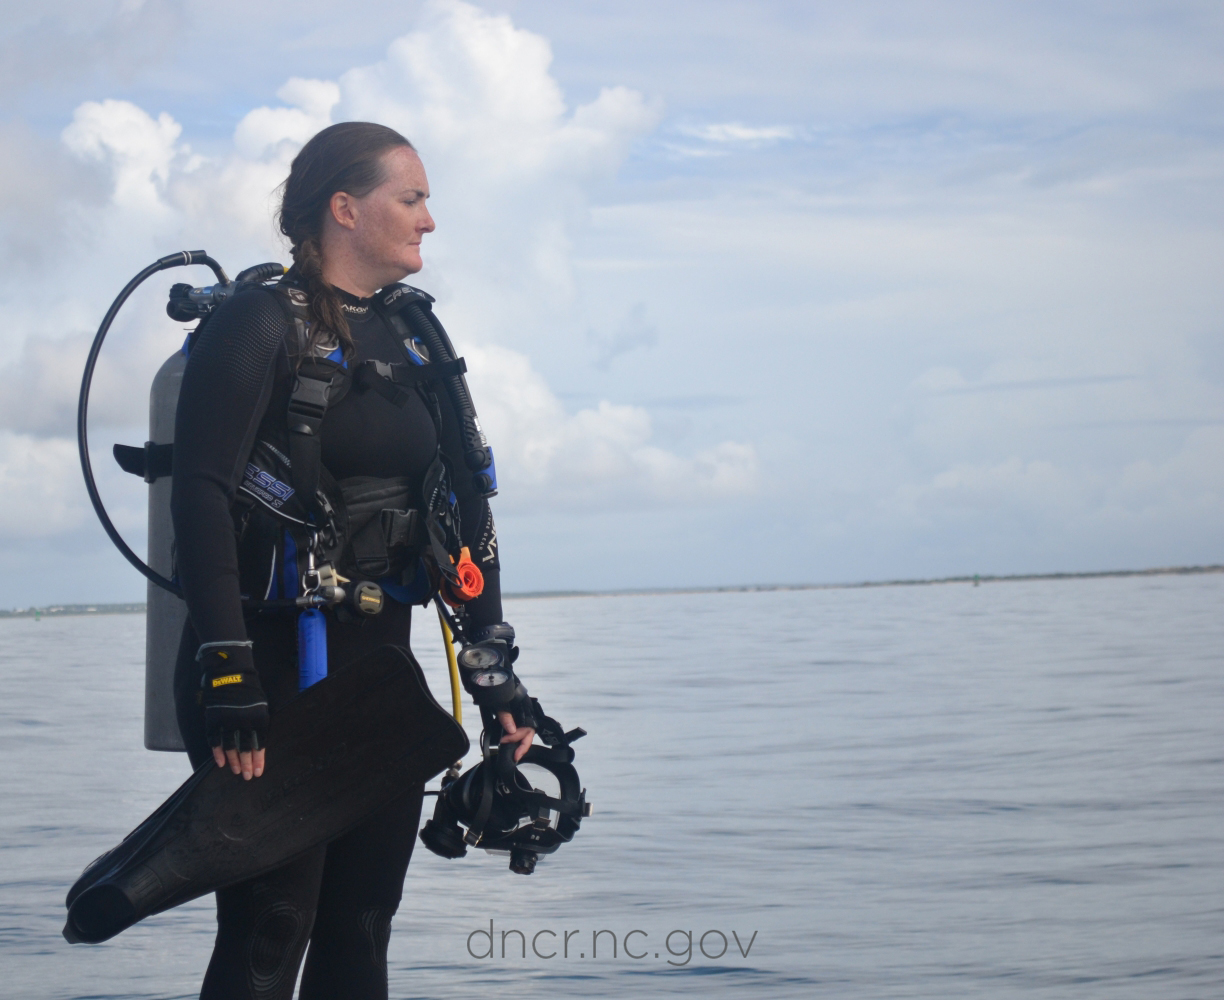 NC OSA underwater archaeologist Kim prepares for a shipwreck dive.